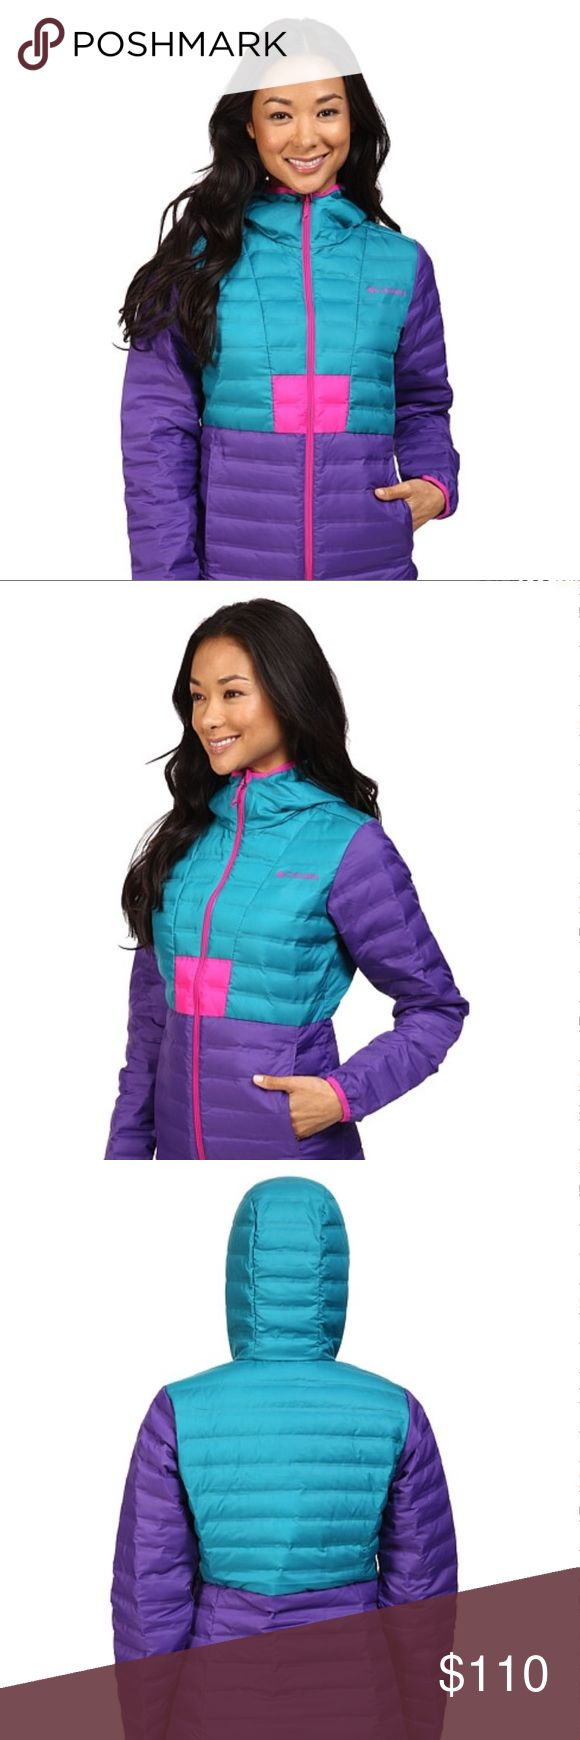 NWT Women's Columbia Flashback Down Jacket! New with tags, never worn, no damage to this women's retro-style puffy coat! Features HEAT SEAL technology that eliminates baffled stitches, so the down stays in & the cold stays out. 650 fill power down insulation. Chin guard. Zippered hand pockets. Active Fit Shell: 100% Polyester. Insulation: 650 Fill Power Down, 80% Duck Down, 20% Duck Feather. This product is made w/100% responsibly sourced down. Colors are royal purple/sea level/groovy pink…